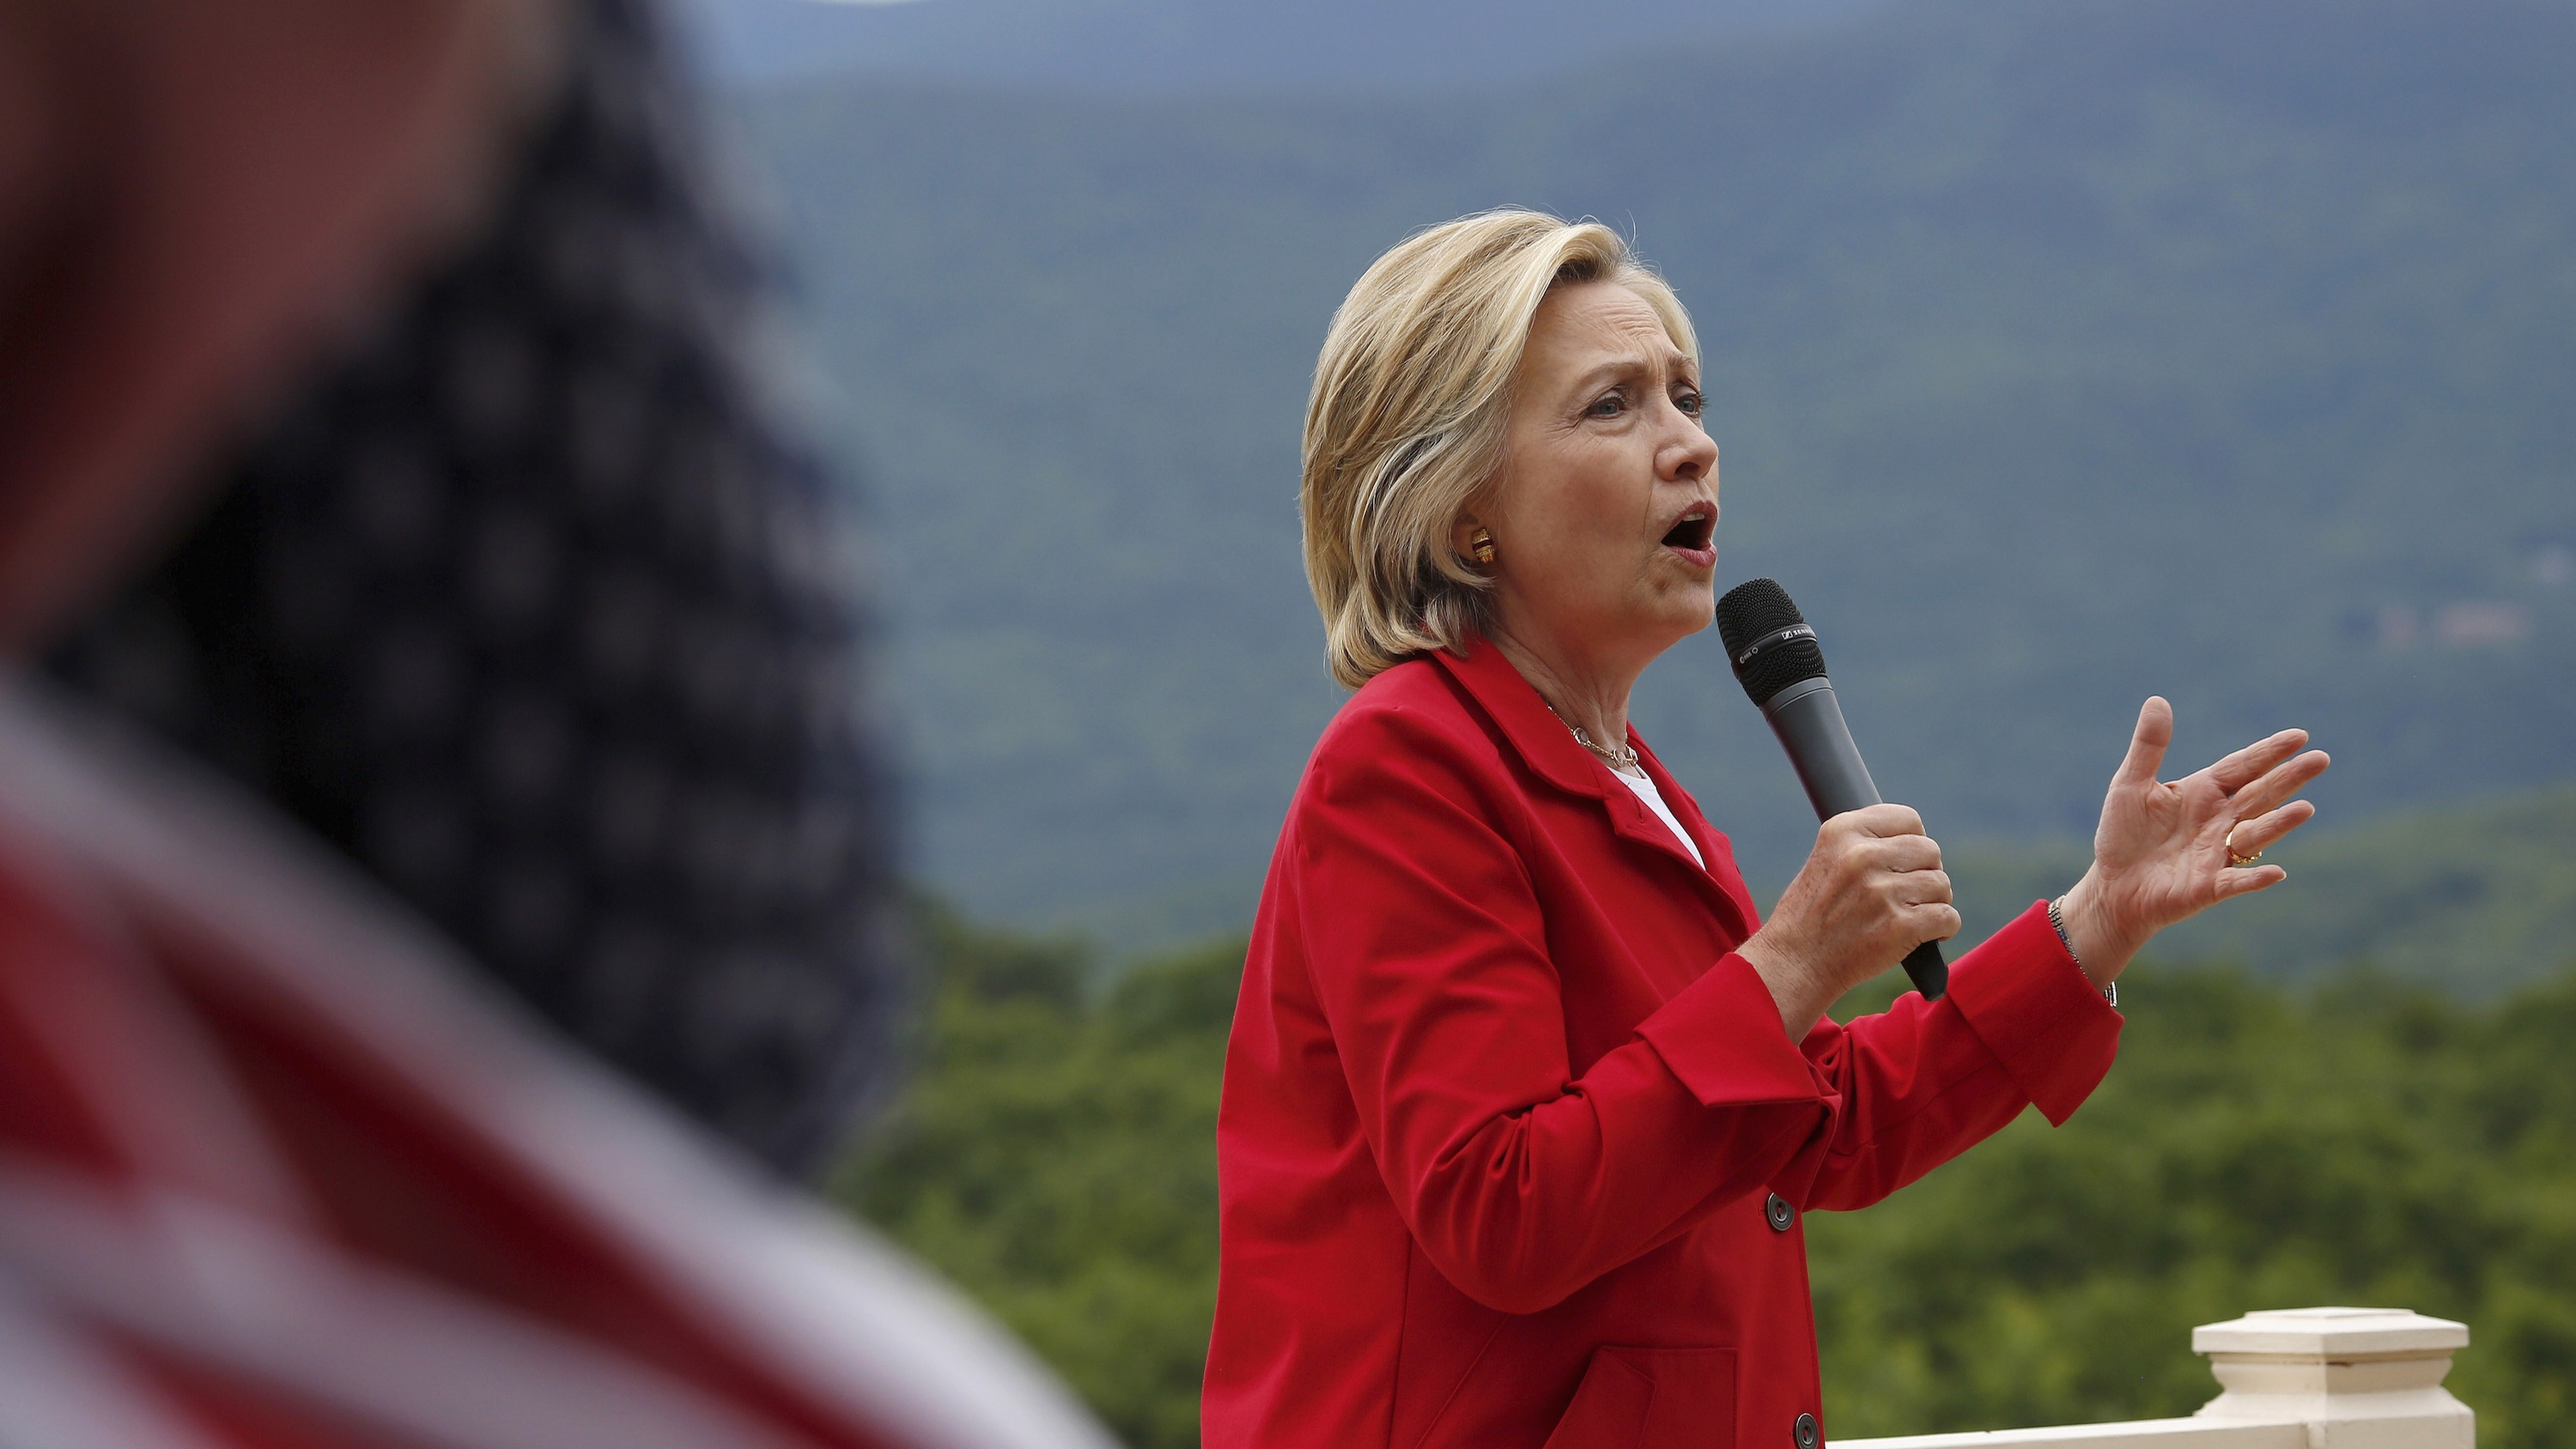 Former US secretary of state and Democratic candidate for president Hillary Clinton warns supporters of an increasingly aggressive China during a campaign event in New Hampshire on July 4, 2015.